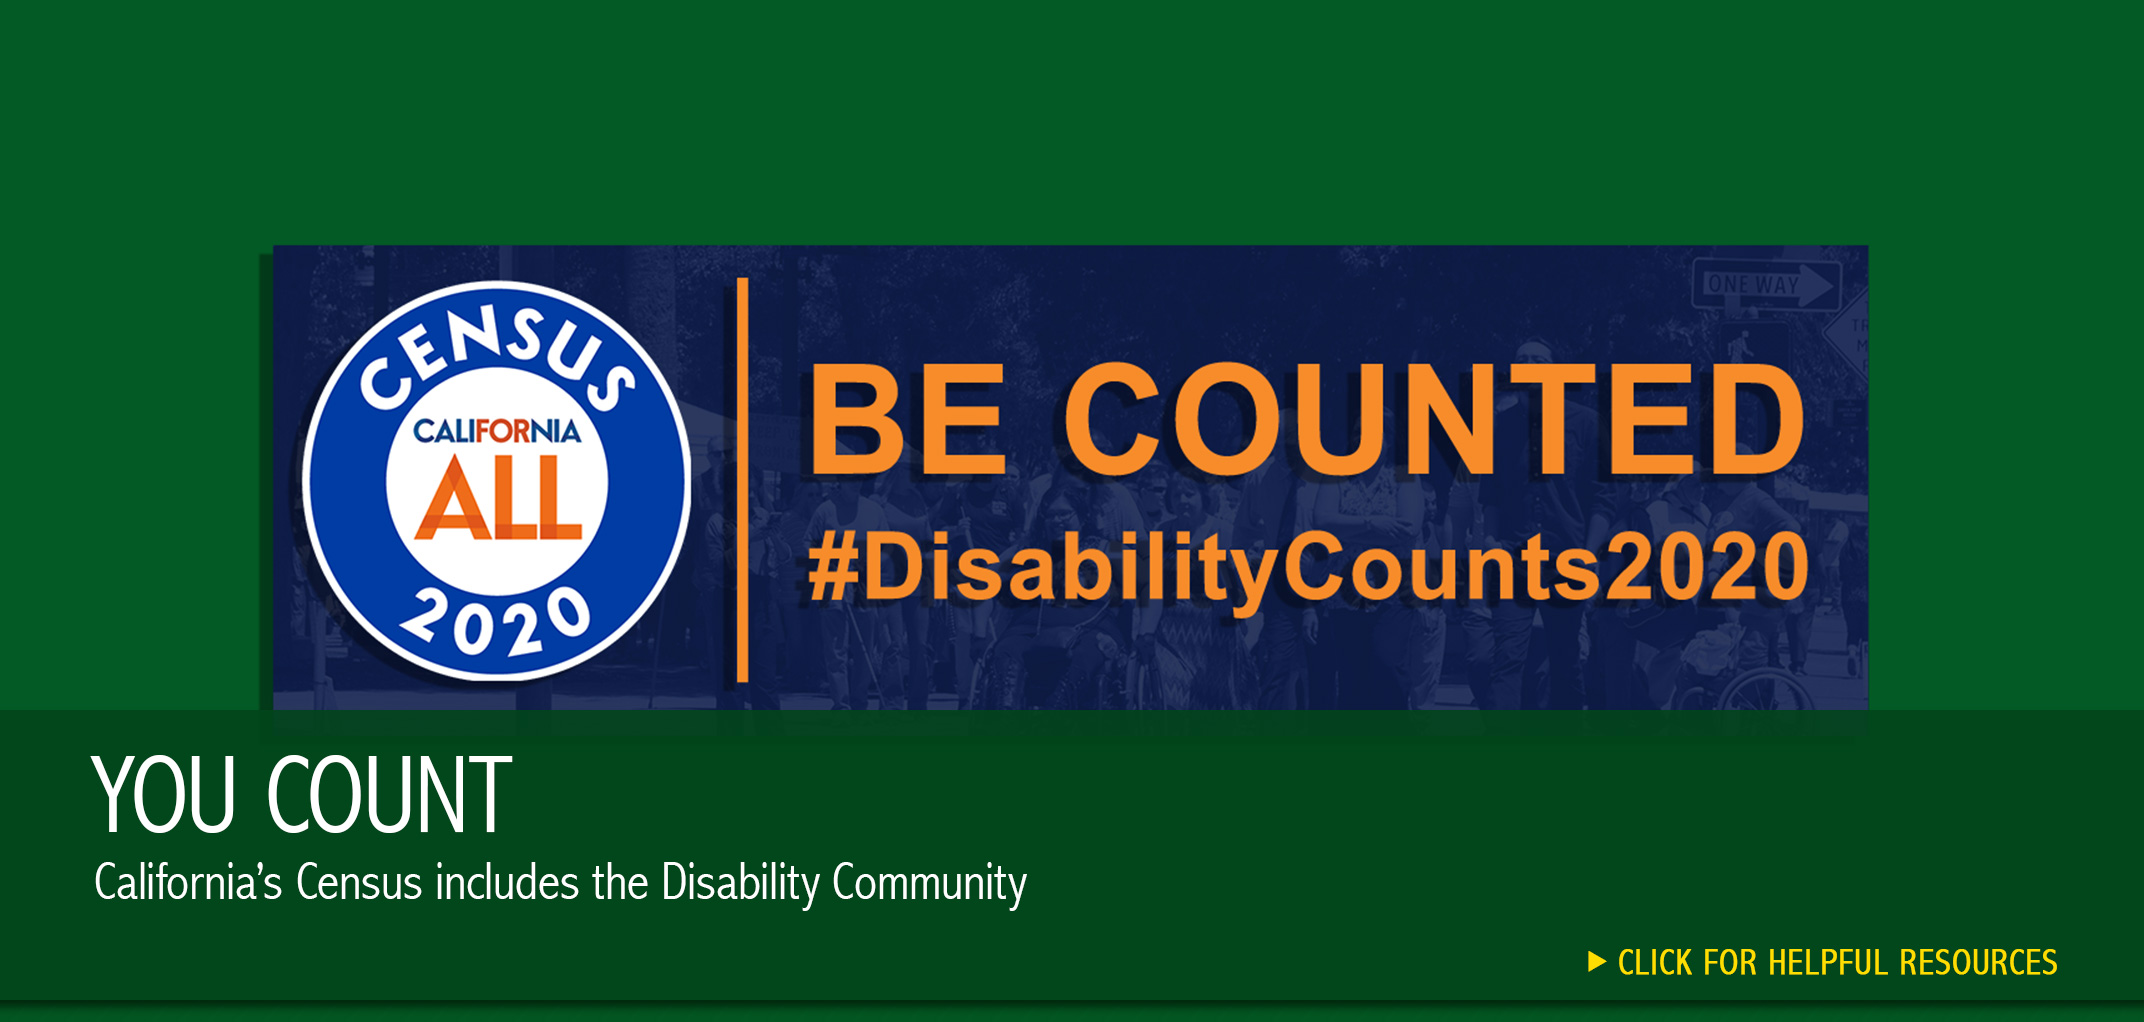 Logo for Census 2020. California for ALL. Be counted. #DisabilityCounts2020. You Count. Californias Census includes the Disability Community. Click for helpful resources.